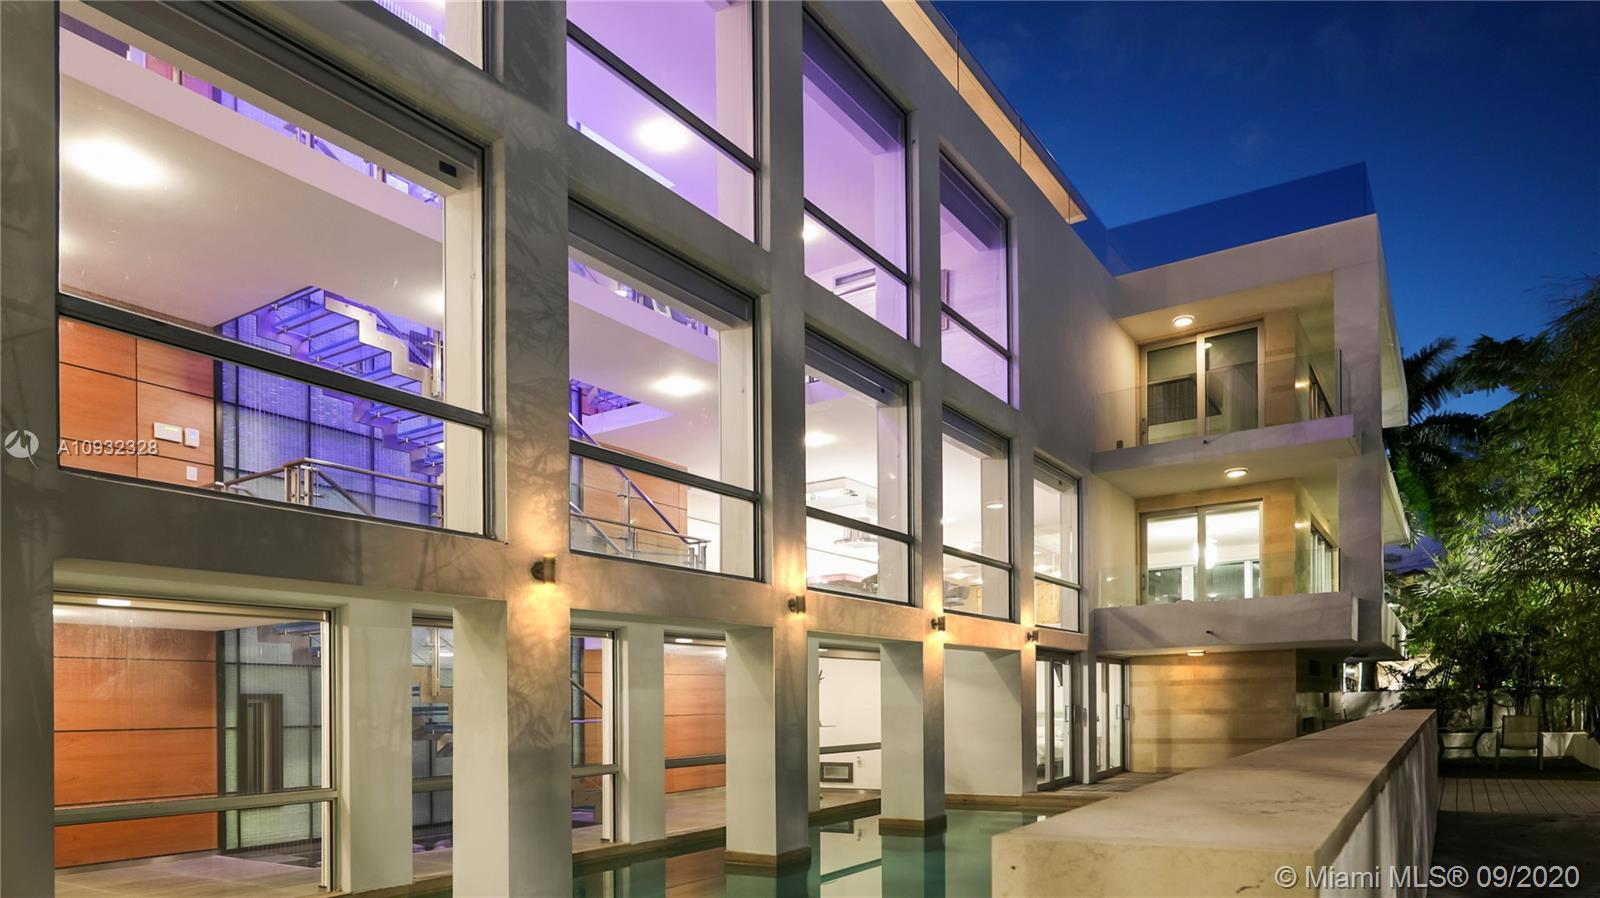 An incredibly designed modern home with an abundance of outdoor living space and natural light ideal